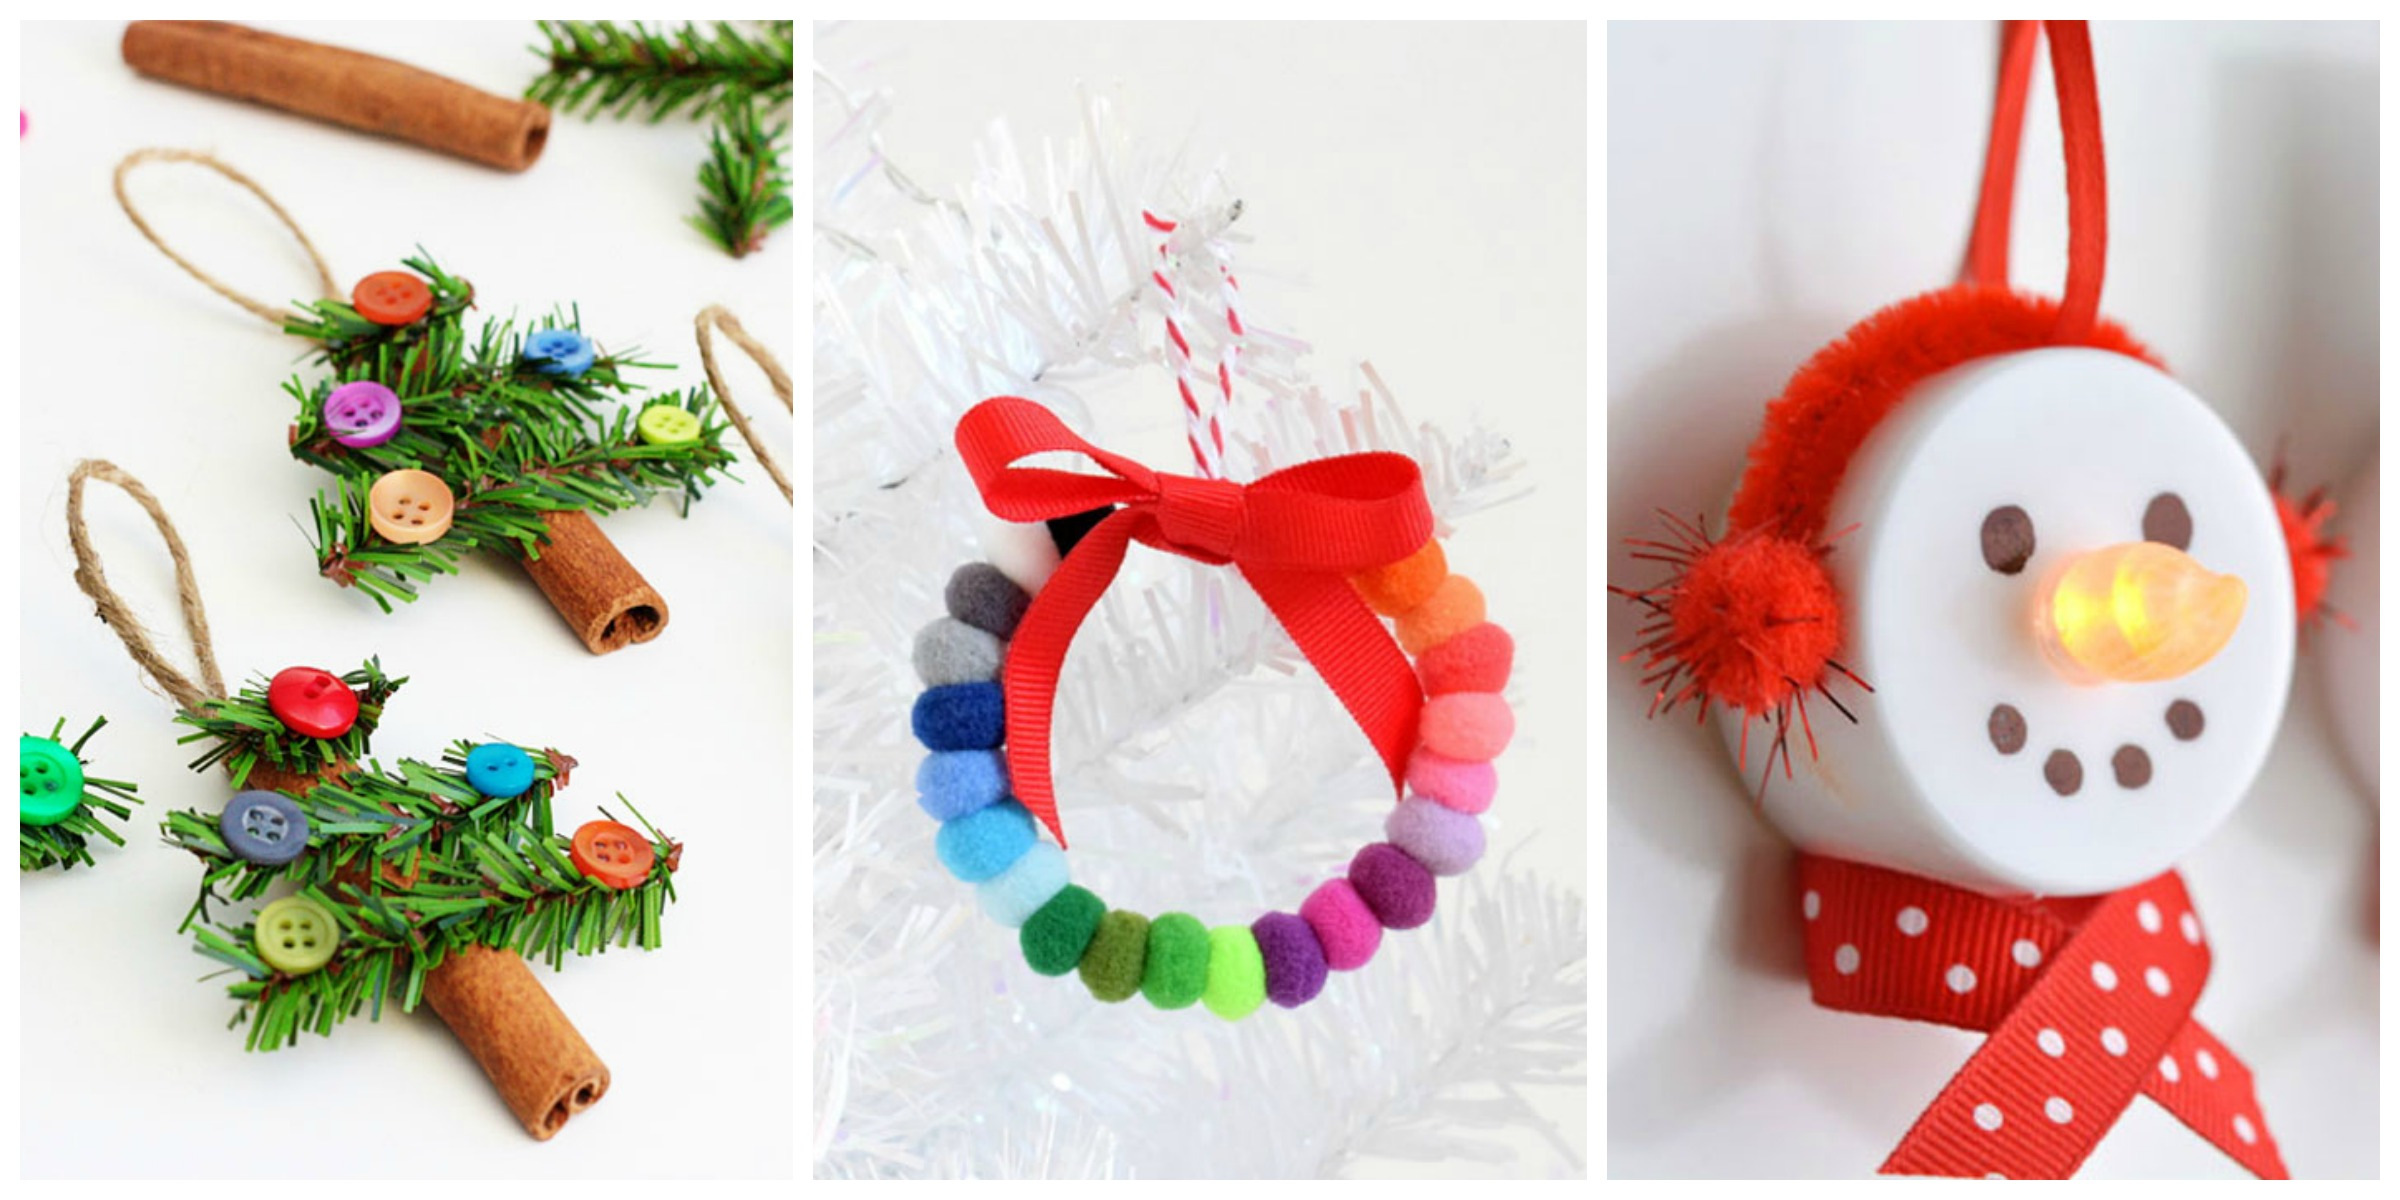 Cool Christmas Decorations Diy All Ideas About Christmas: creative christmas decorations